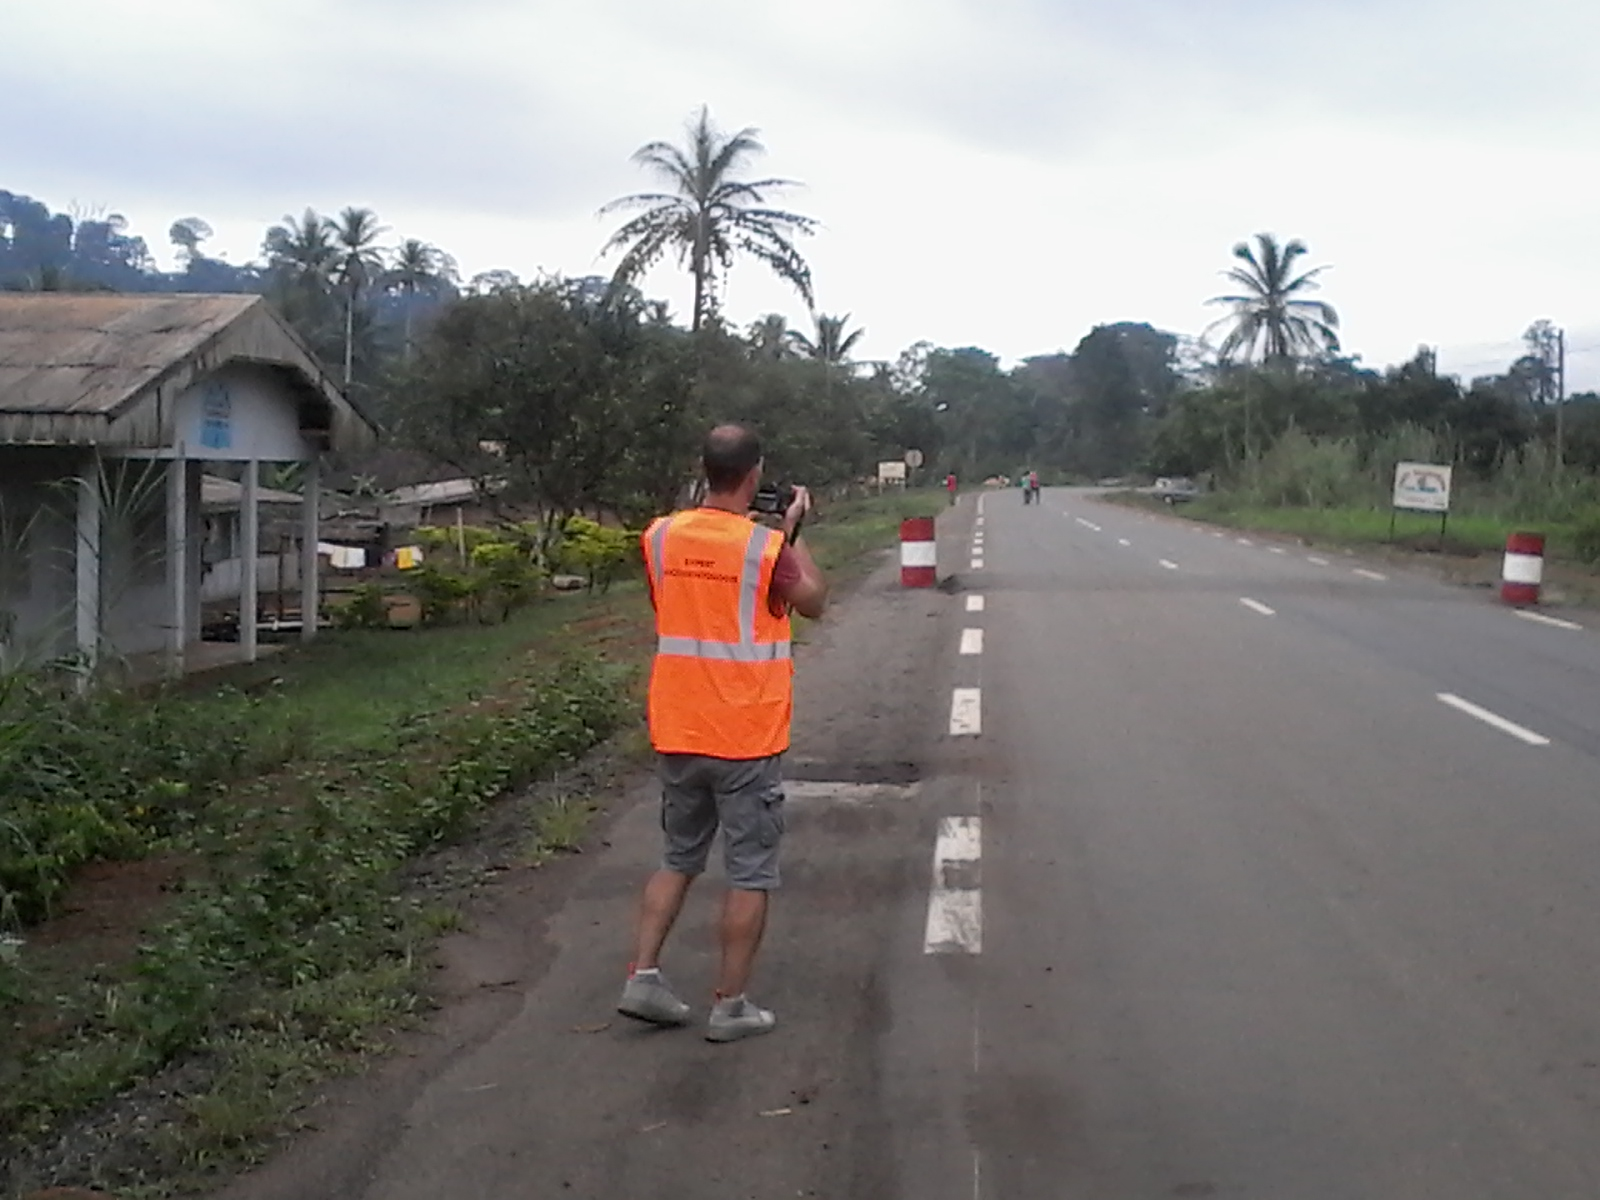 Road safety audit in Cameroon